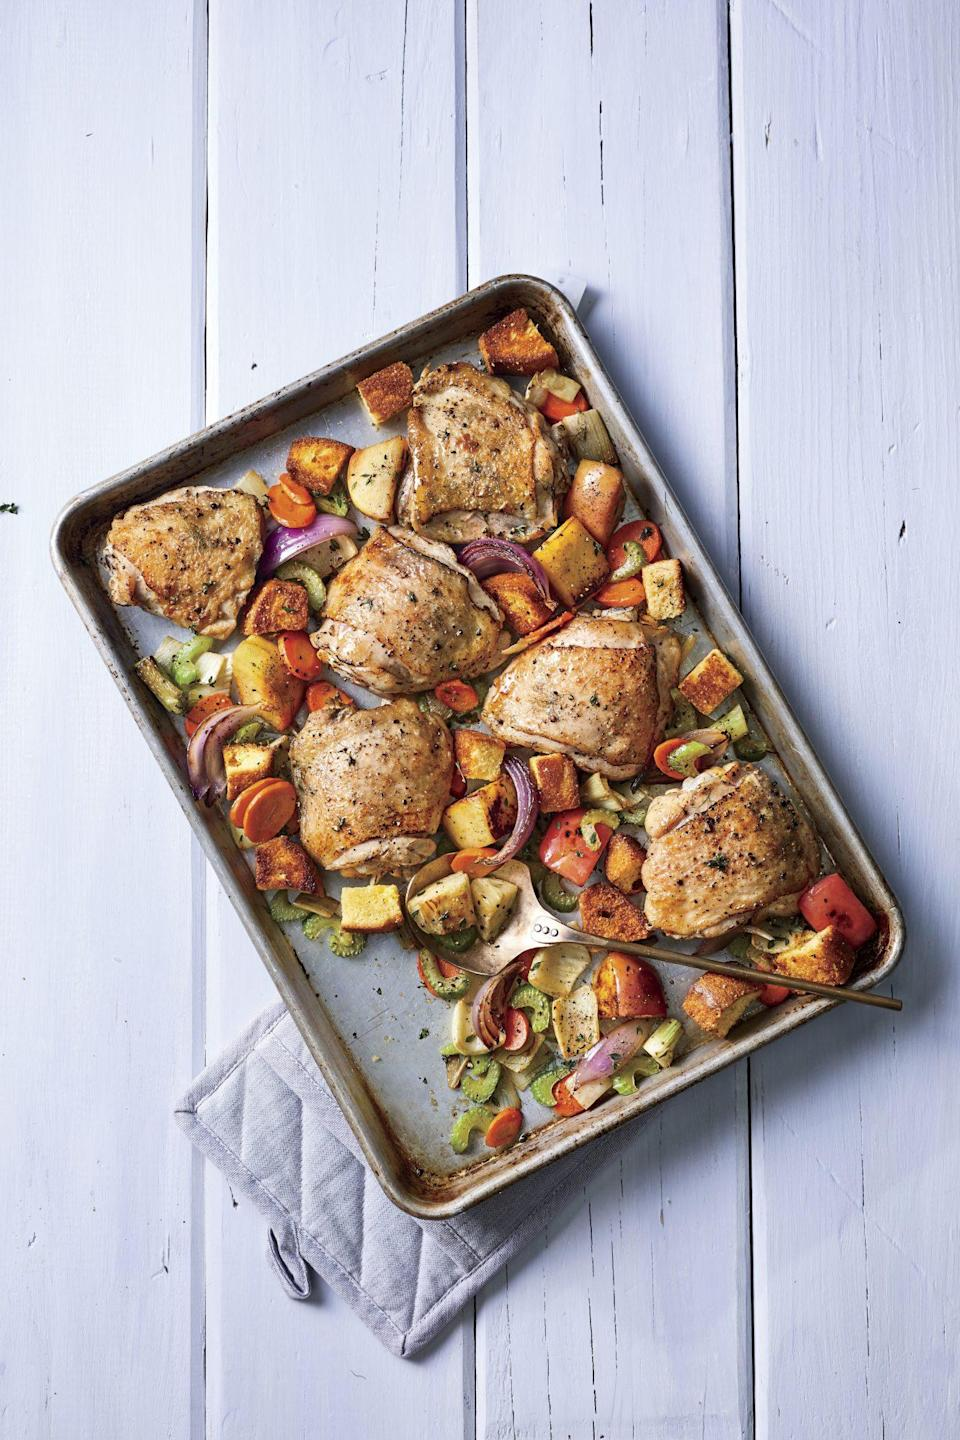 """<p><strong>Recipe: <a href=""""https://www.southernliving.com/recipes/baked-chicken-thighs"""" rel=""""nofollow noopener"""" target=""""_blank"""" data-ylk=""""slk:Baked Chicken Thighs with Dressing"""" class=""""link rapid-noclick-resp"""">Baked Chicken Thighs with Dressing</a></strong></p> <p>With fresh veggies, juicy chicken, and toasty chunks of cornbread, this sheet pan supper is almost like a deconstructed, roasted Panzanella.</p>"""